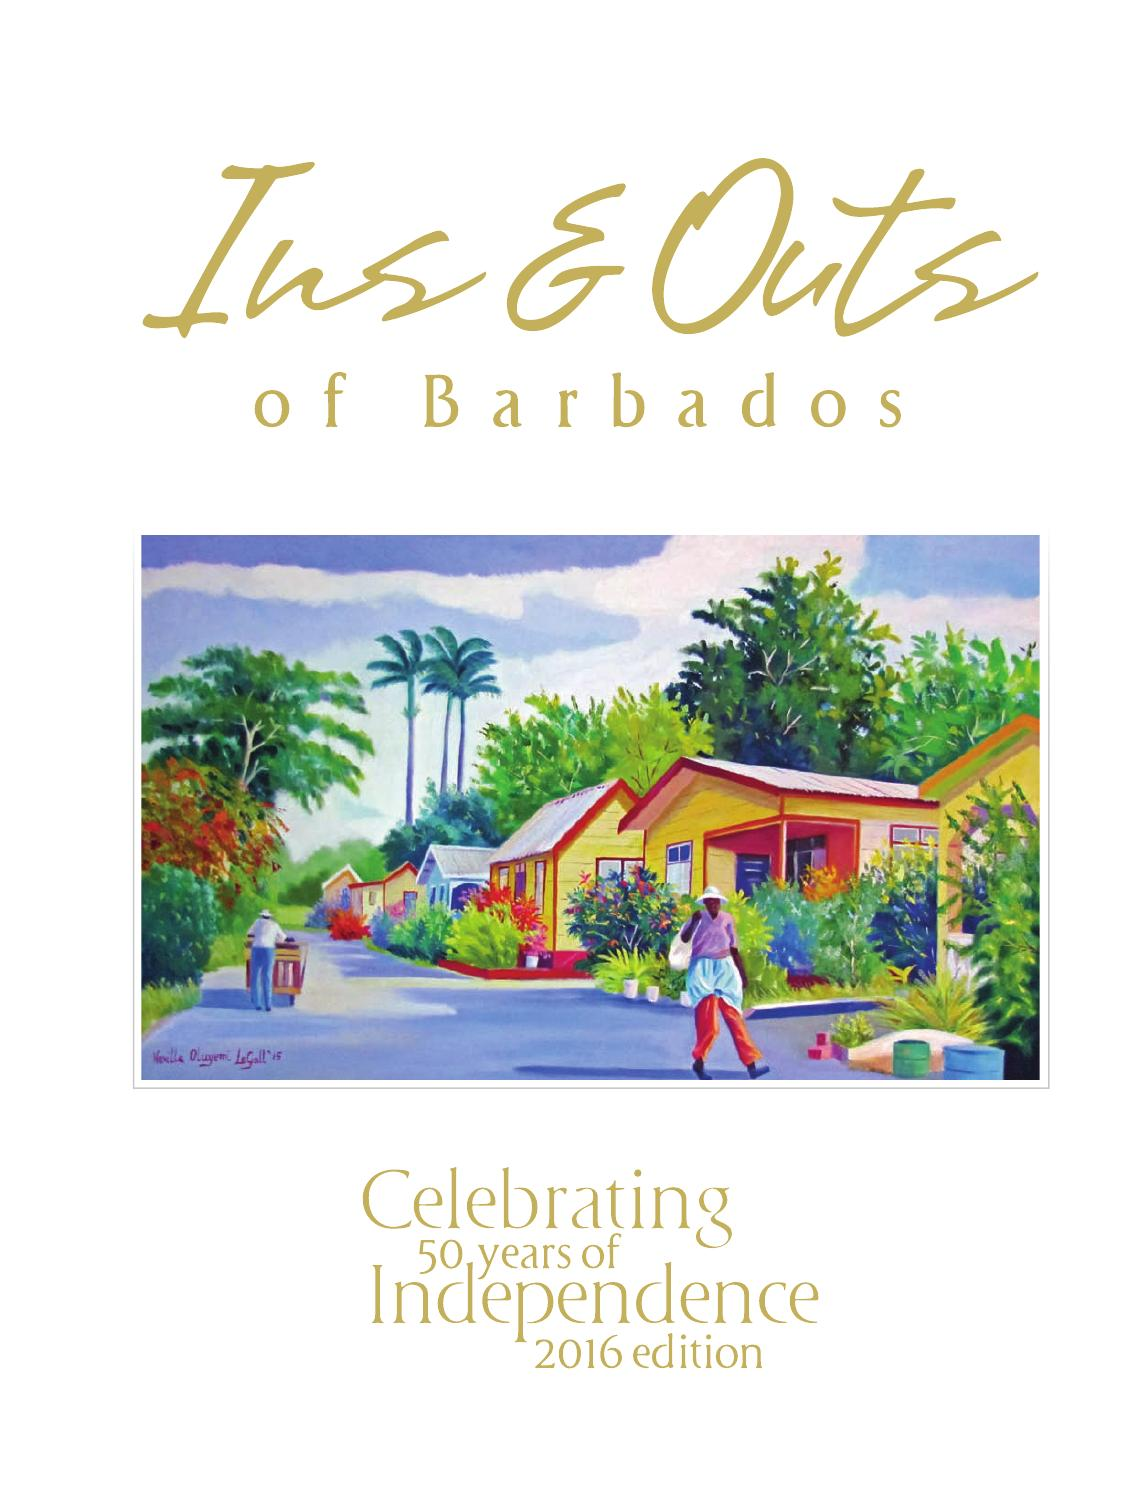 Ins Outs Of Barbados 2016 Edition By Miller Publishing Co Ltd Issuu Salt Taster Circuit